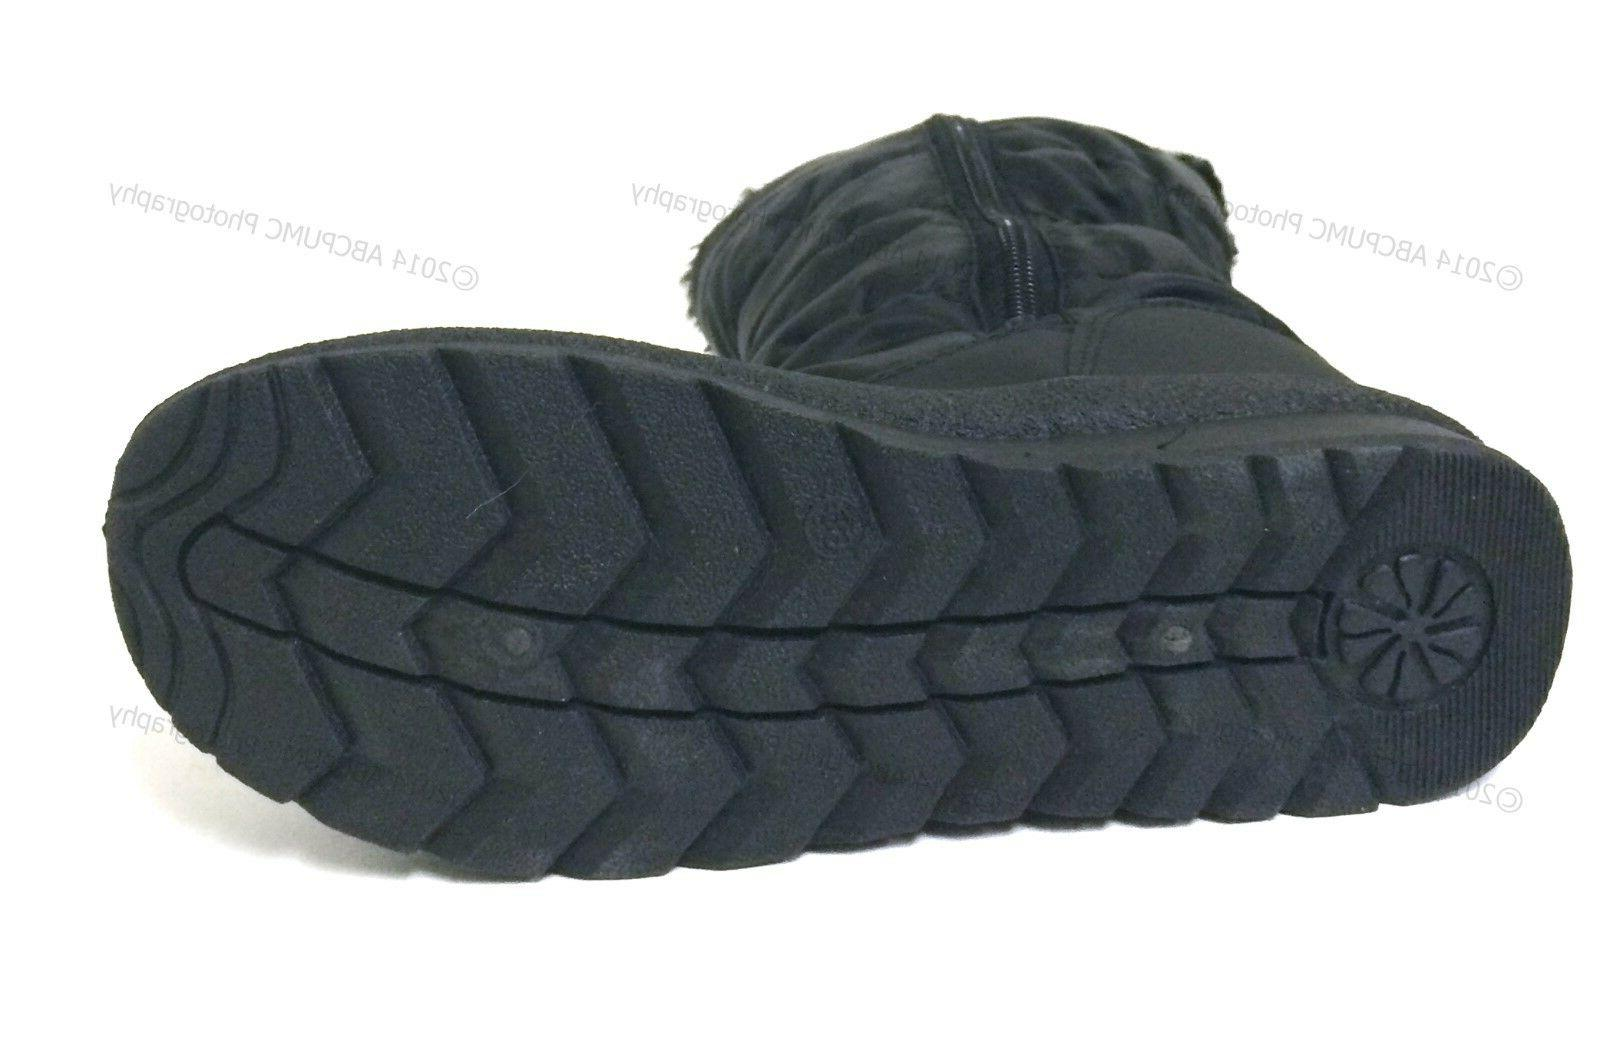 New Boots Fur Lined Insulated Zipper Shoes